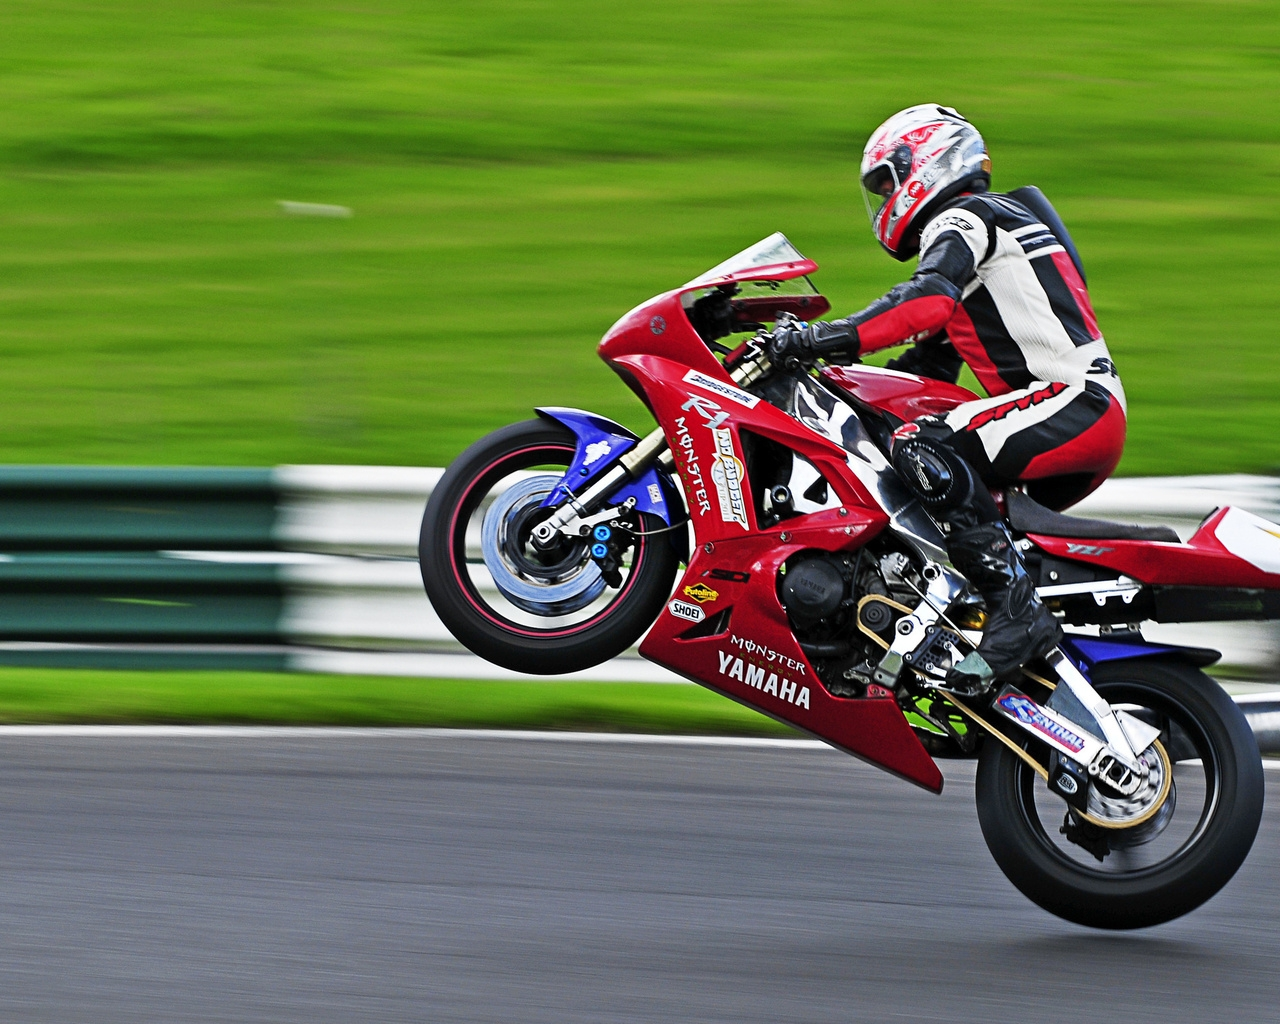 Yamaha R1 Wheelie for 1280 x 1024 resolution